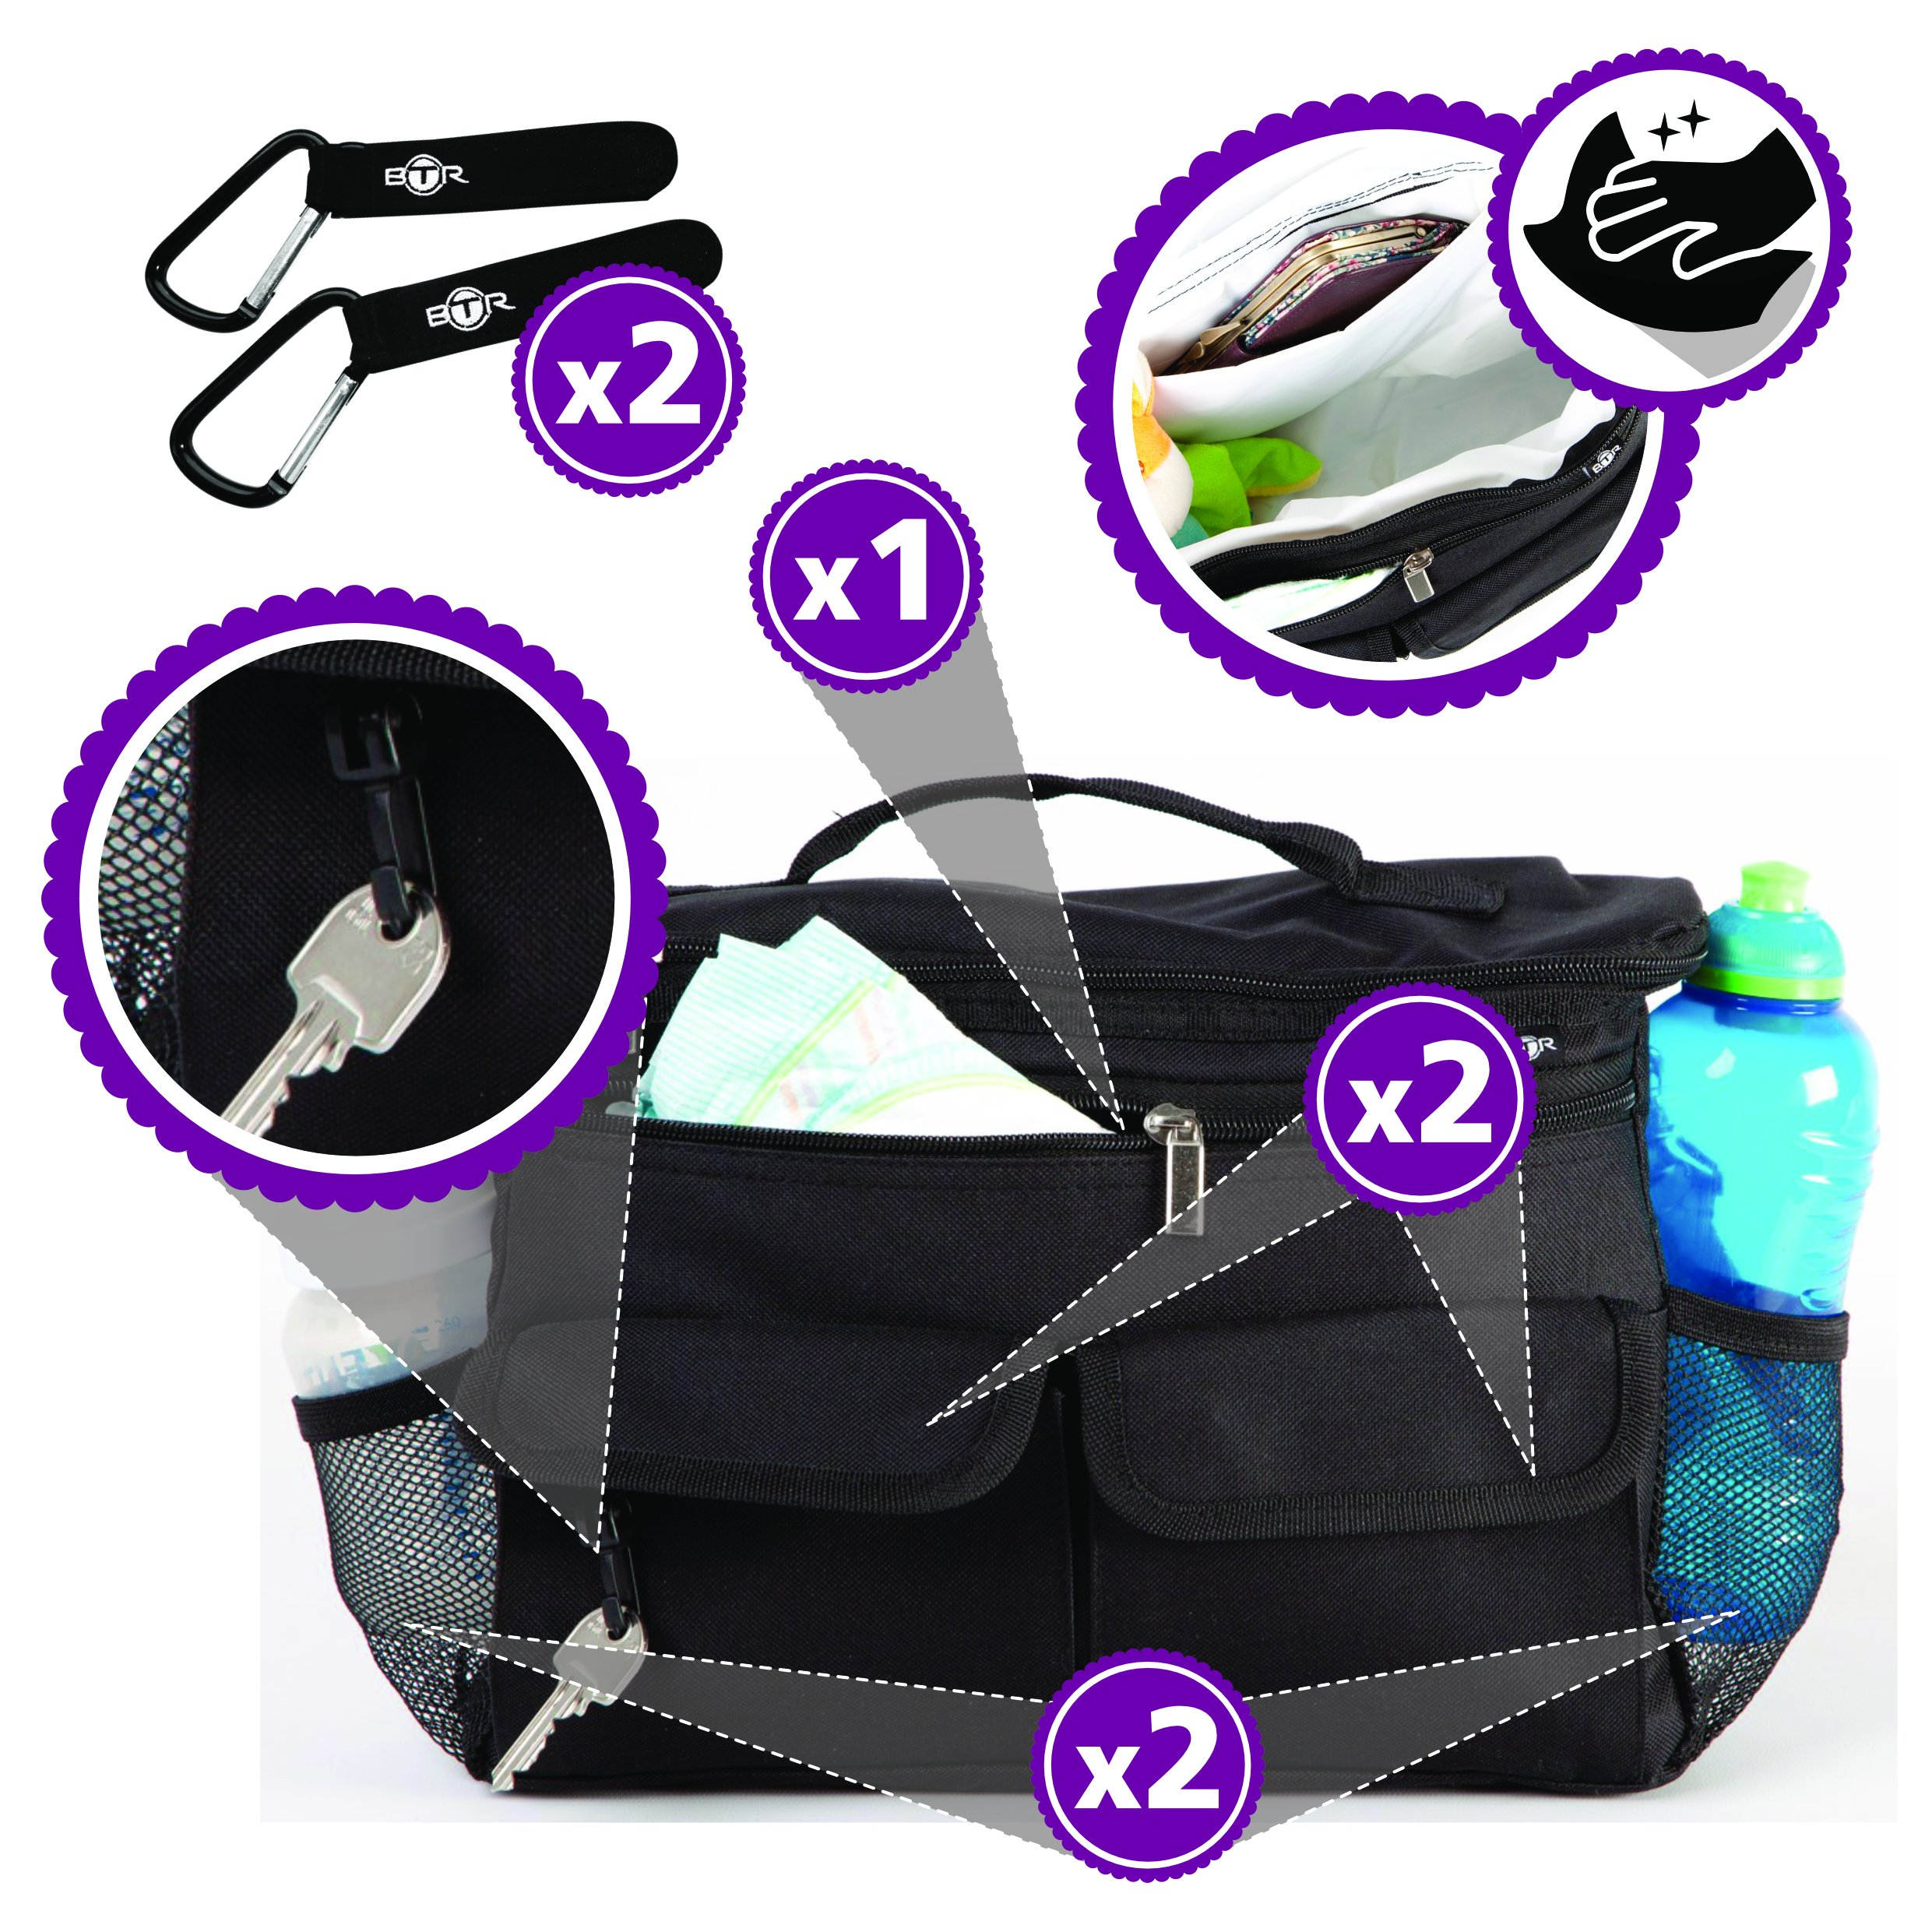 BTR Stroller Organizer with Stroller Hooks x 2. Baby and Pushchair Accessory That Fits Most Buggies, Prams and Strollers. by BTR (Image #3)